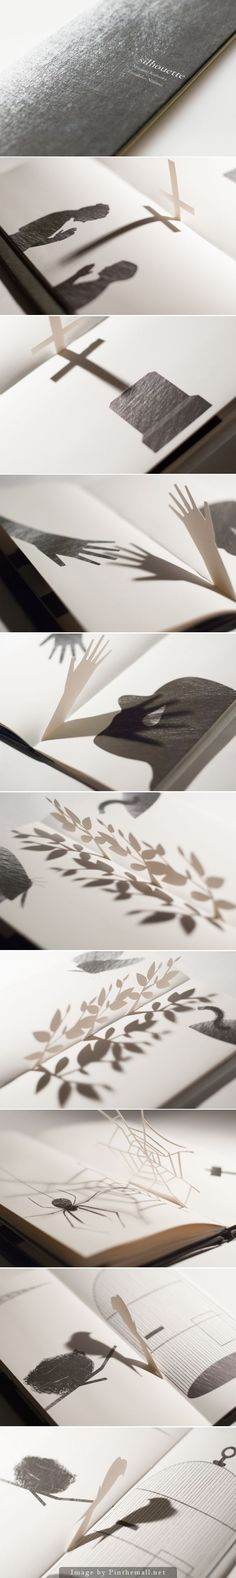 An interactive Japanese book by Megumi Kajiwara and Tathuhiko Nijima that includes pop-up silhouettes in-between pages http://silhouette-about.tumblr.com